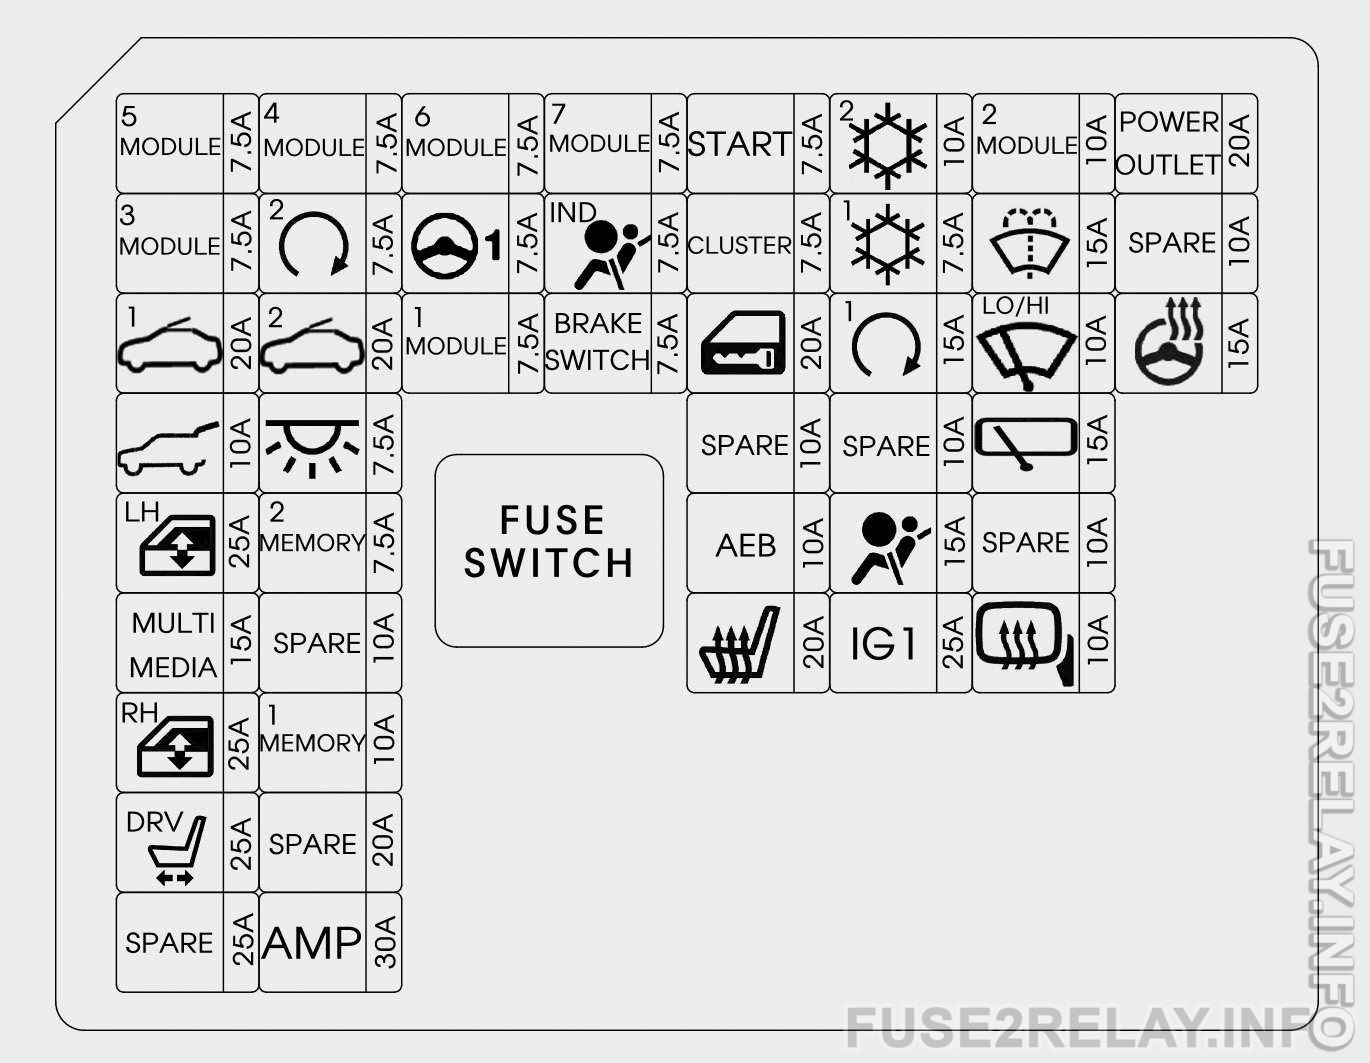 Hyundai i30 (2018) fuse relay box diagram